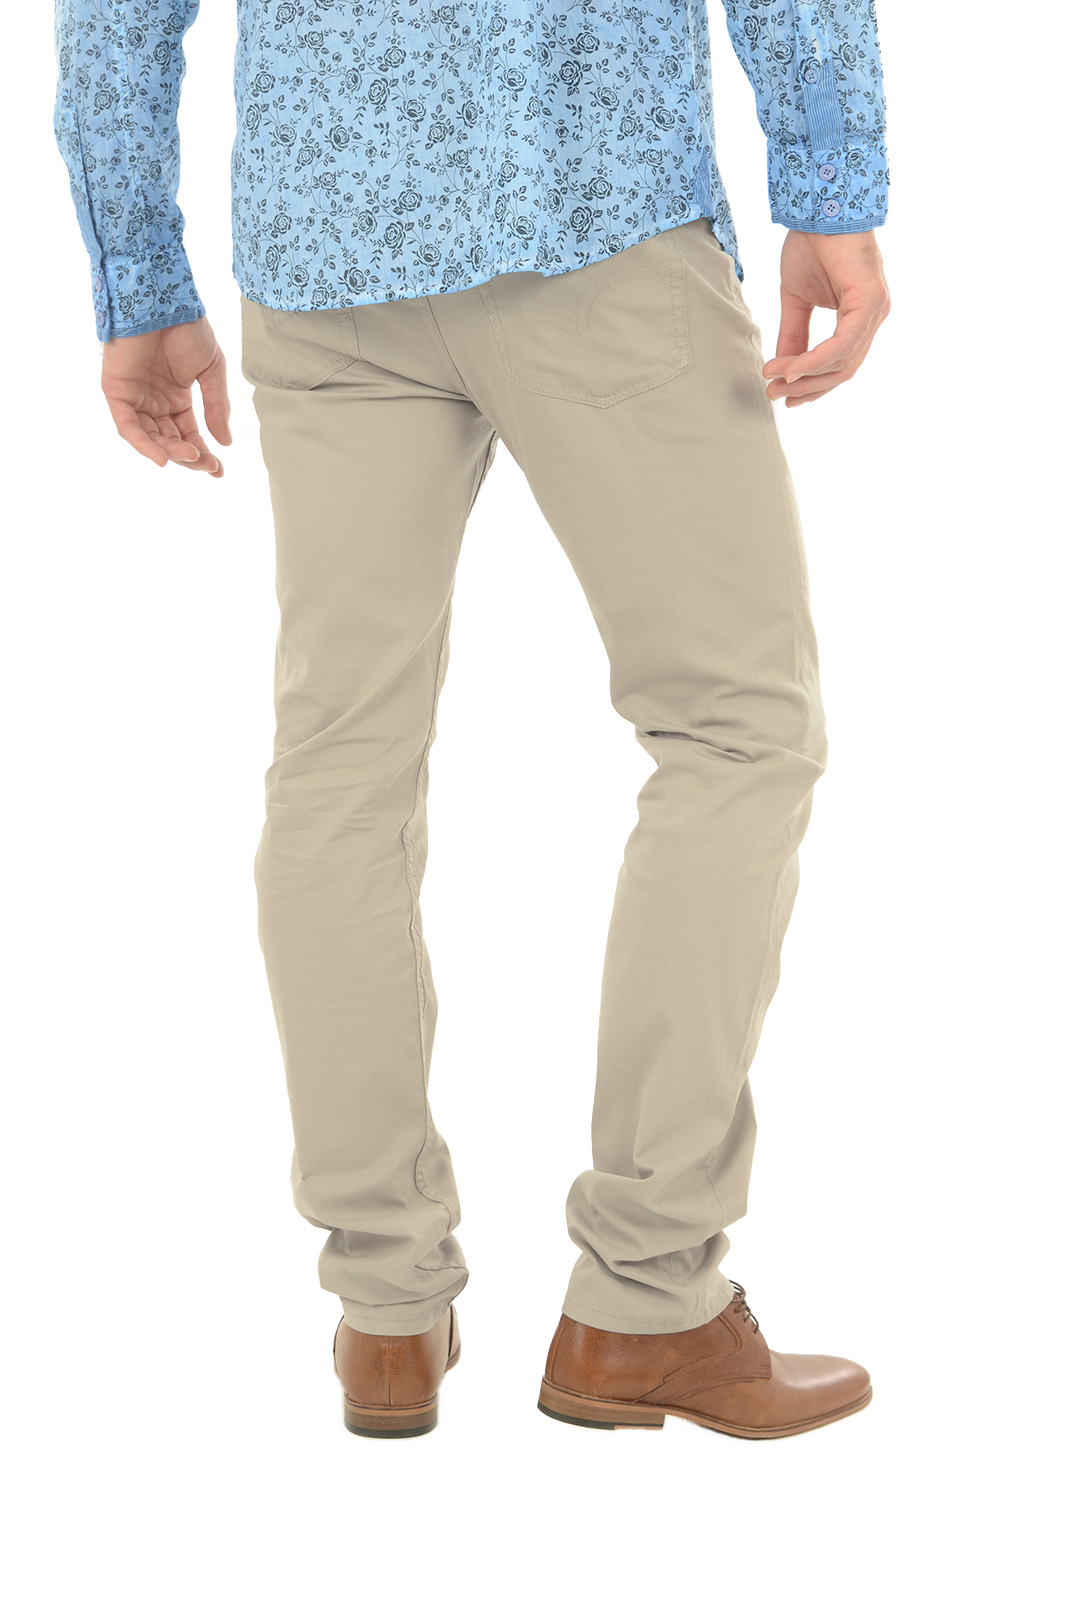 Pantalons chino/citadin  Lee cooper LC118ZP 7901 BEIGE